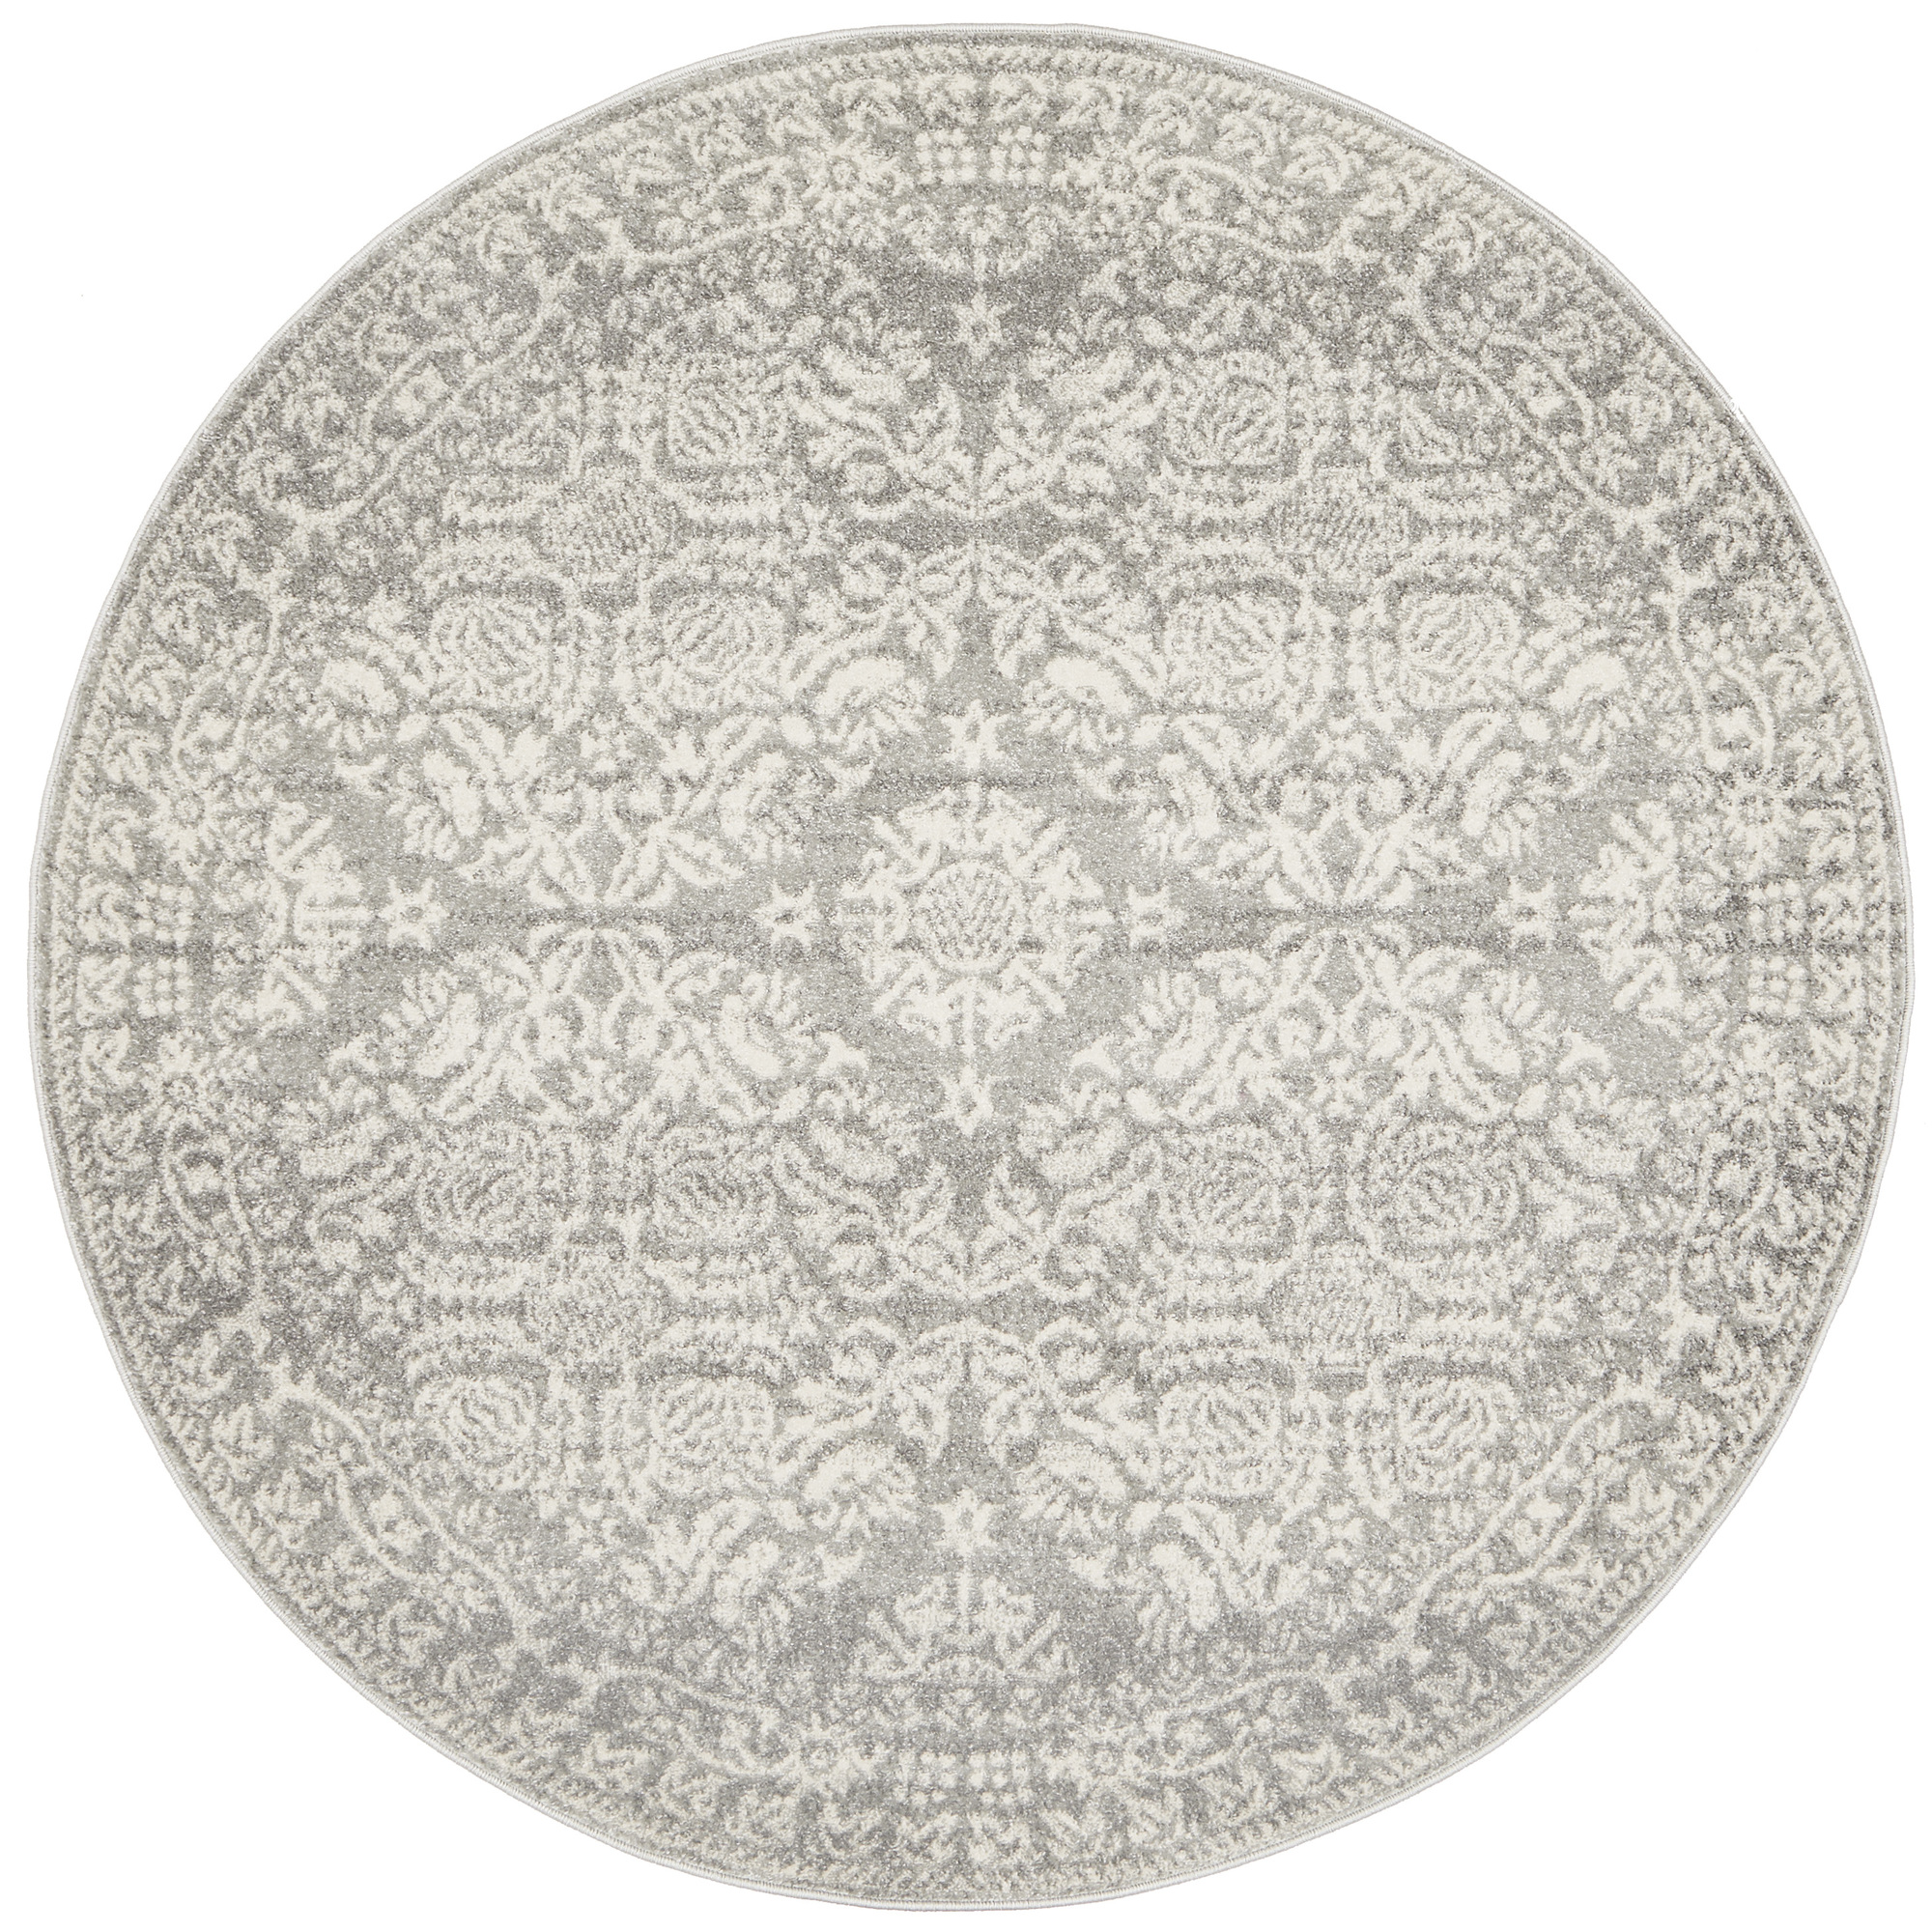 SKU #NETW7127 Oxus Silver & Grey Power Loomed Modern Round Rug is also  sometimes listed under the following manufacturer numbers:  MIR-358-SIL-150X150,